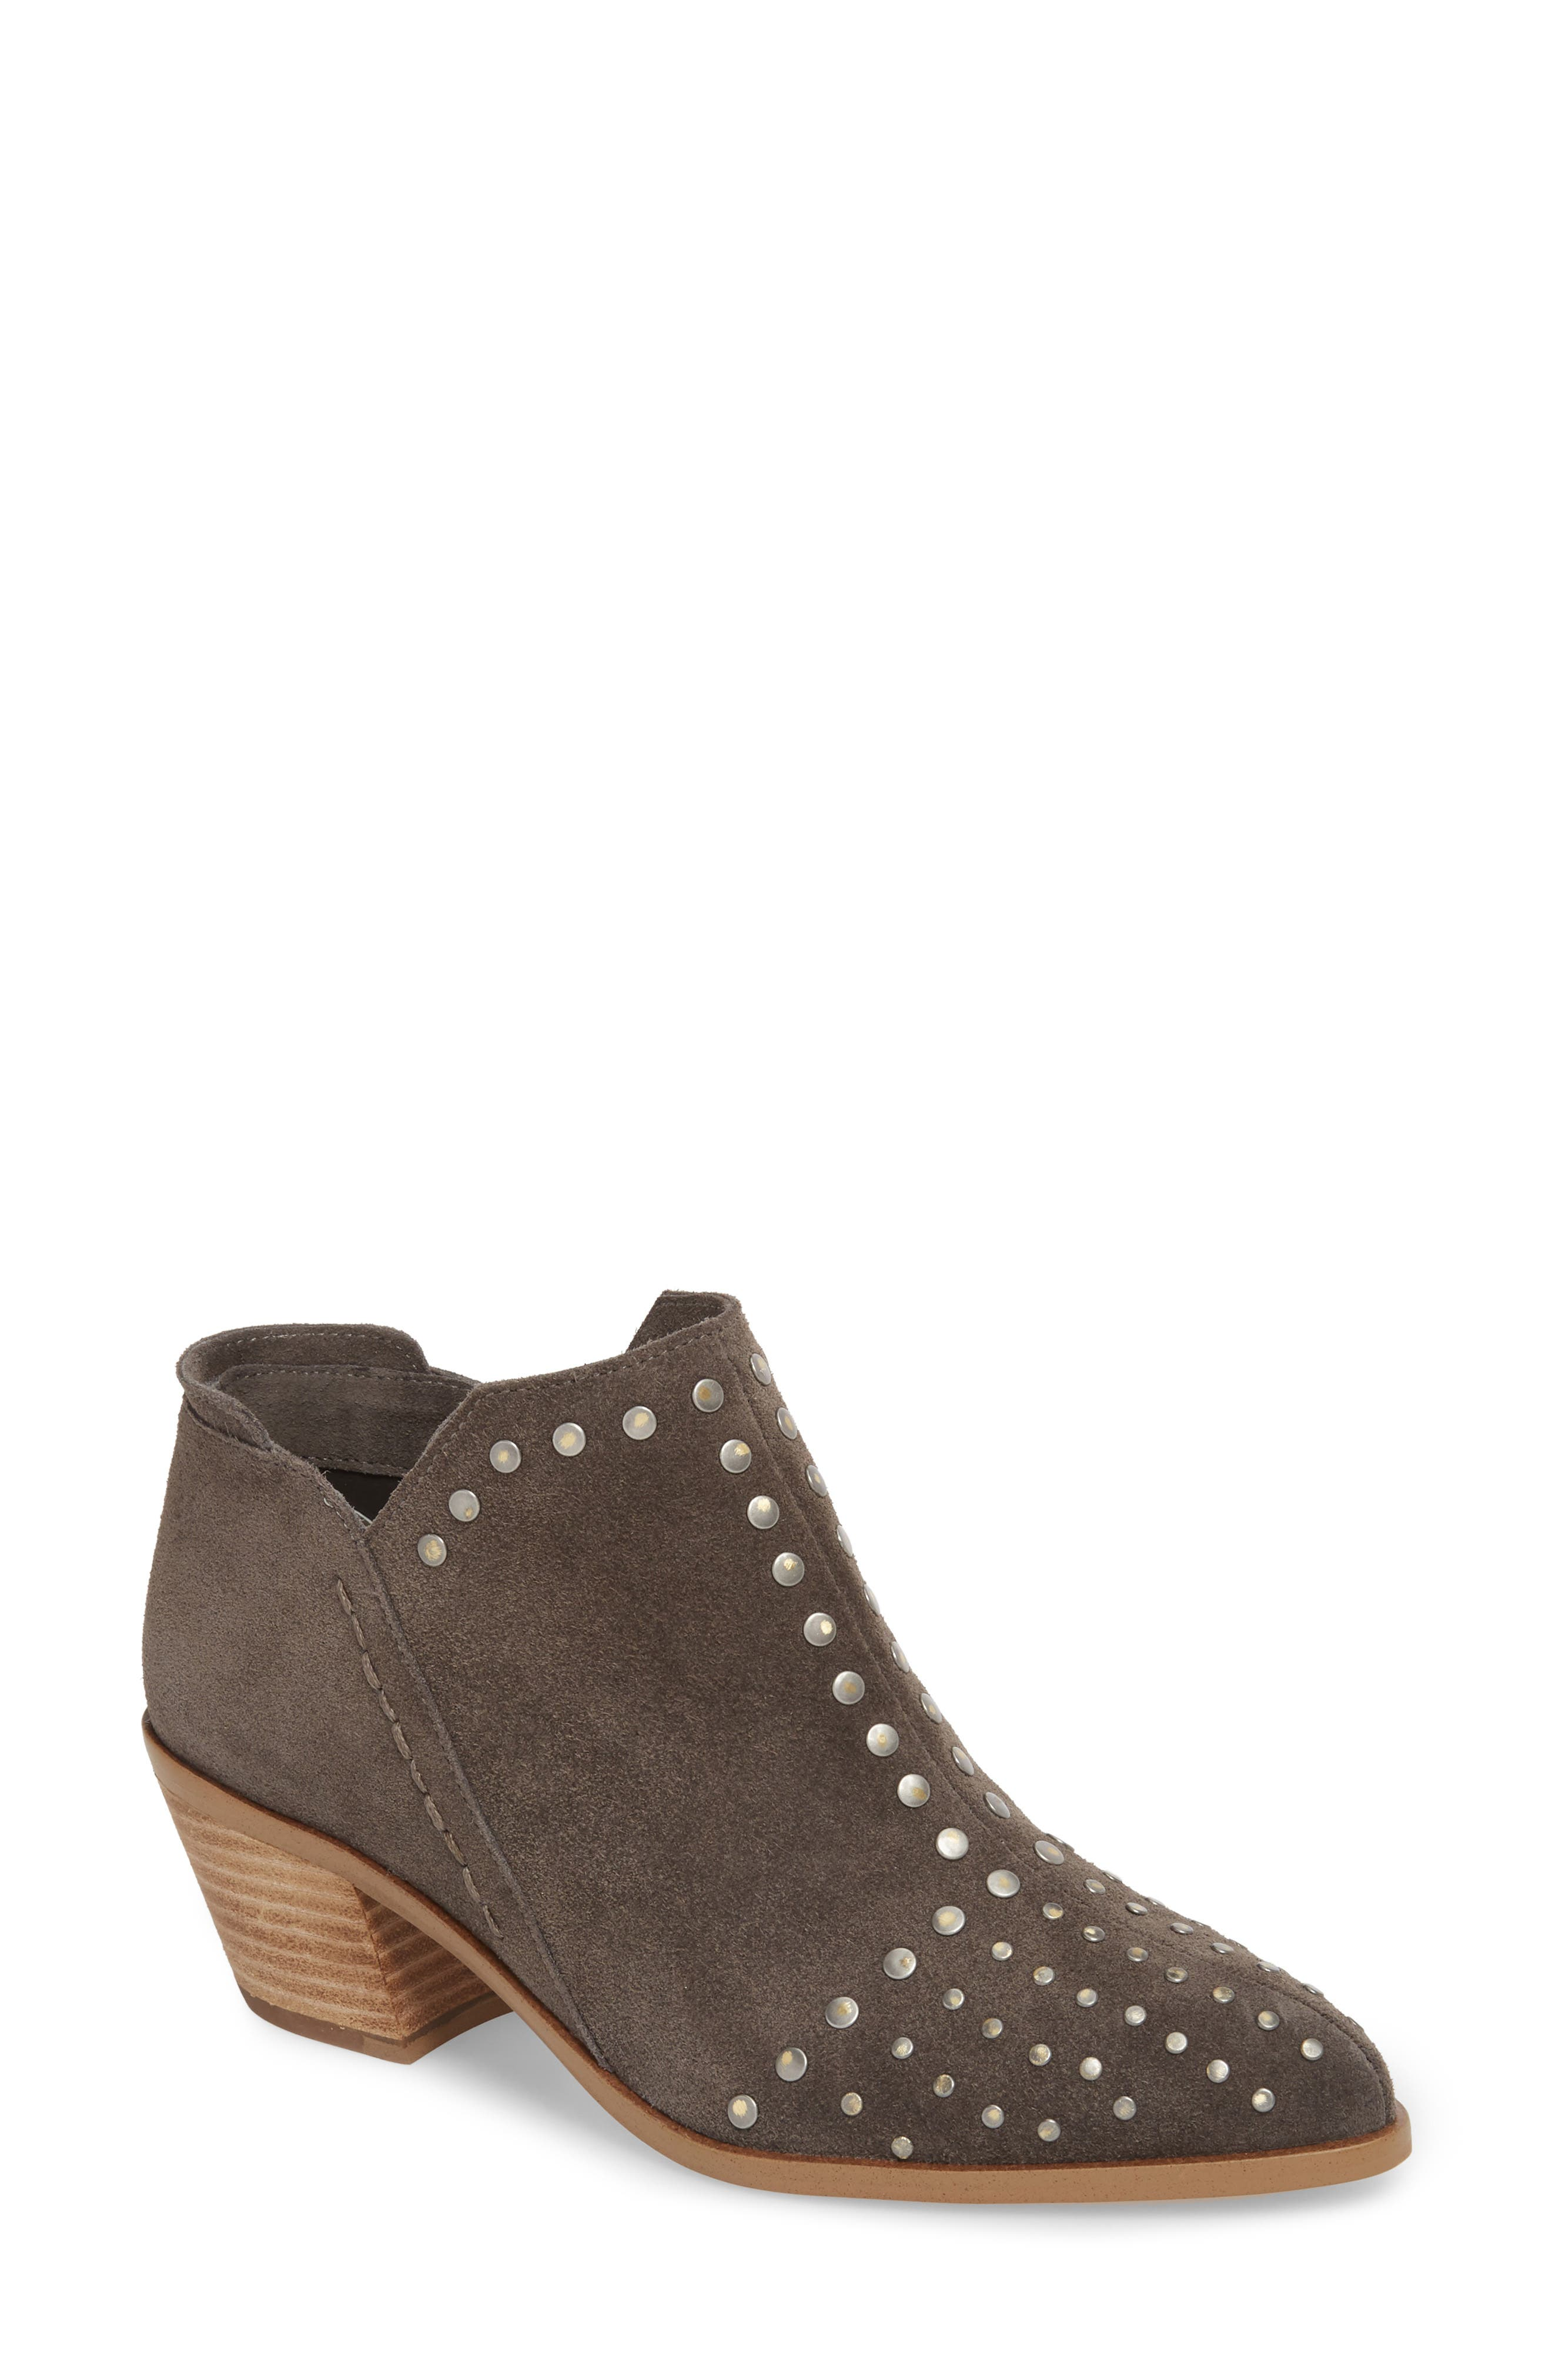 Loka Studded Bootie,                             Main thumbnail 1, color,                             CHARCOAL SUEDE